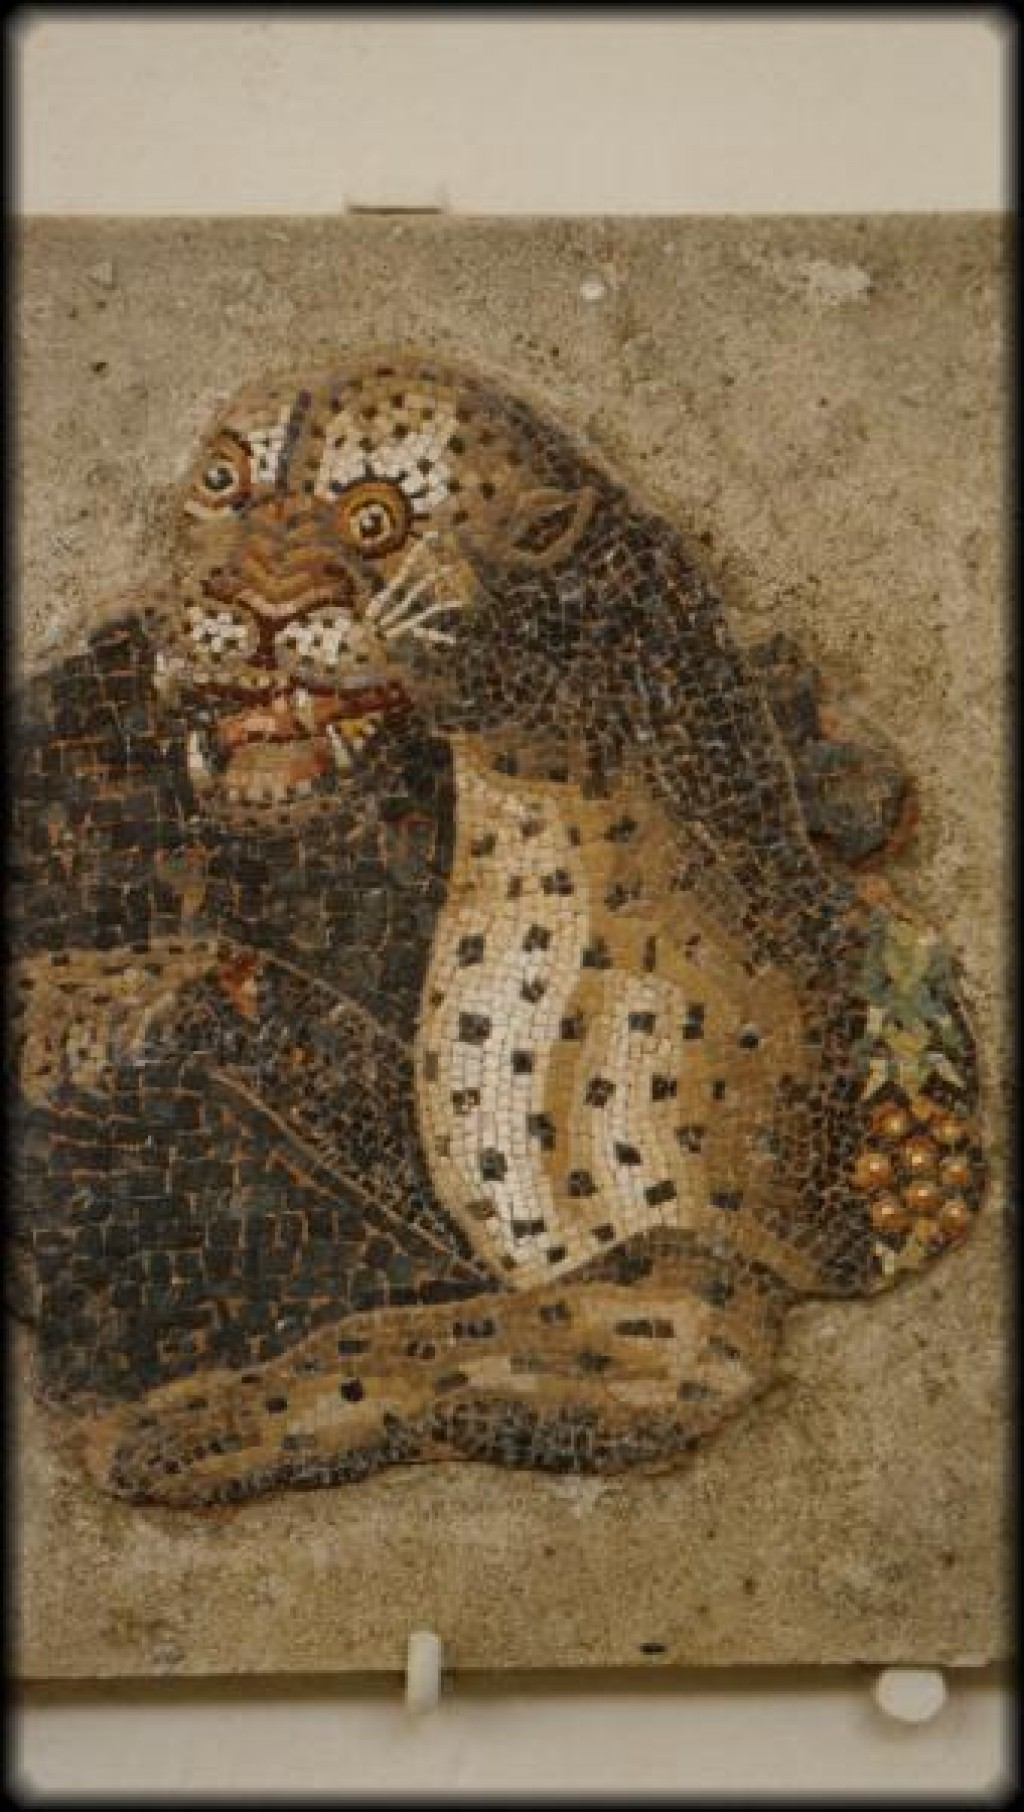 A panther mosaic from the House of Dionysus.